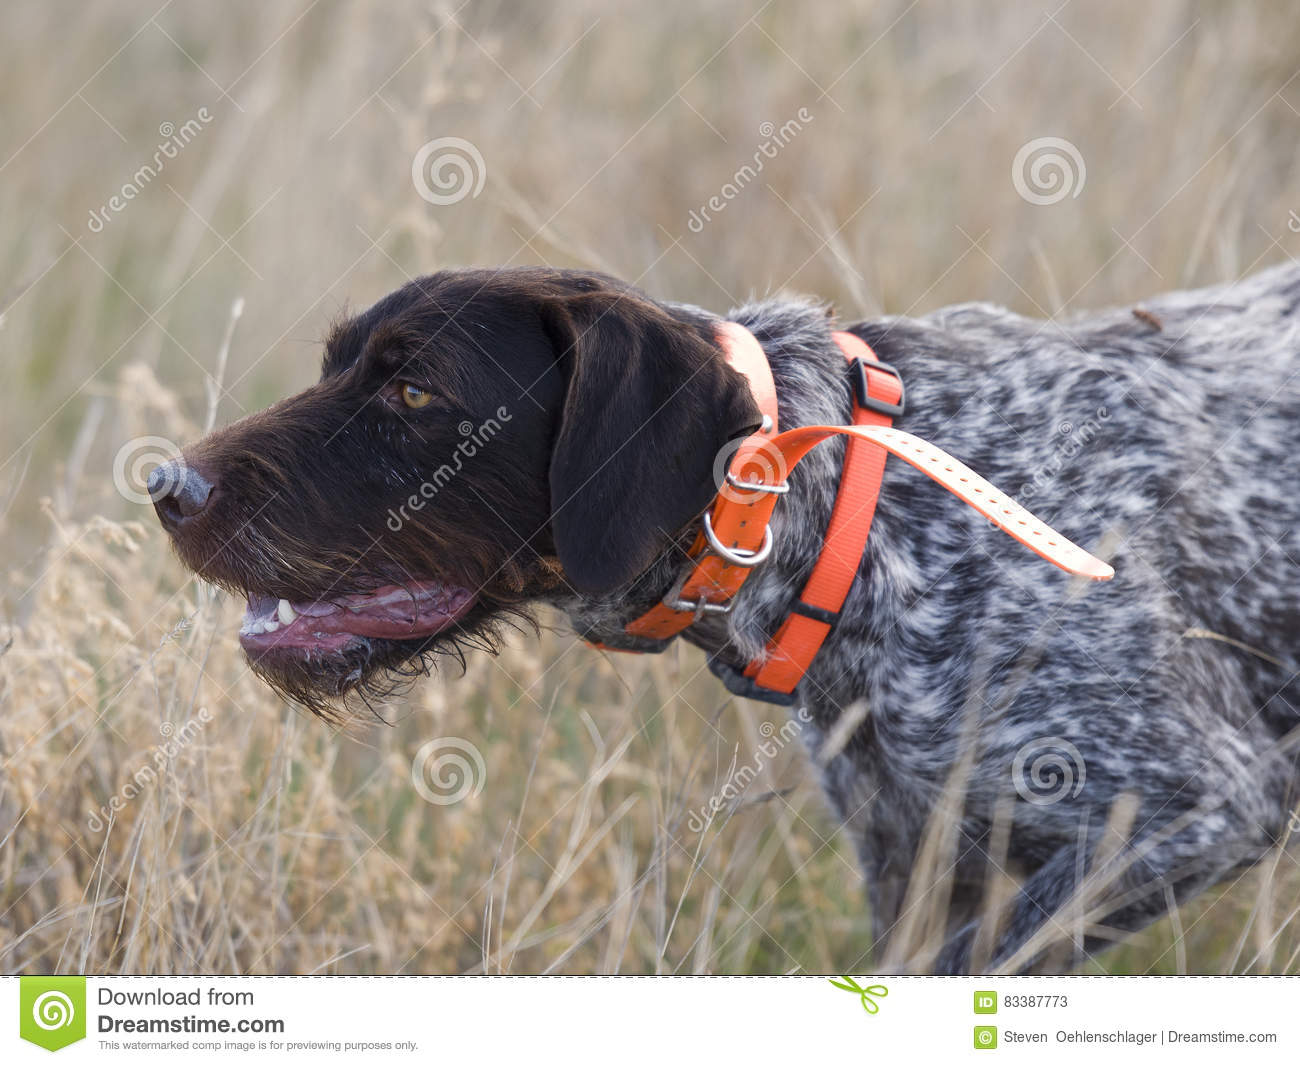 Drahthaar hunting dog stock image. Image of point, wirehair - 83387773